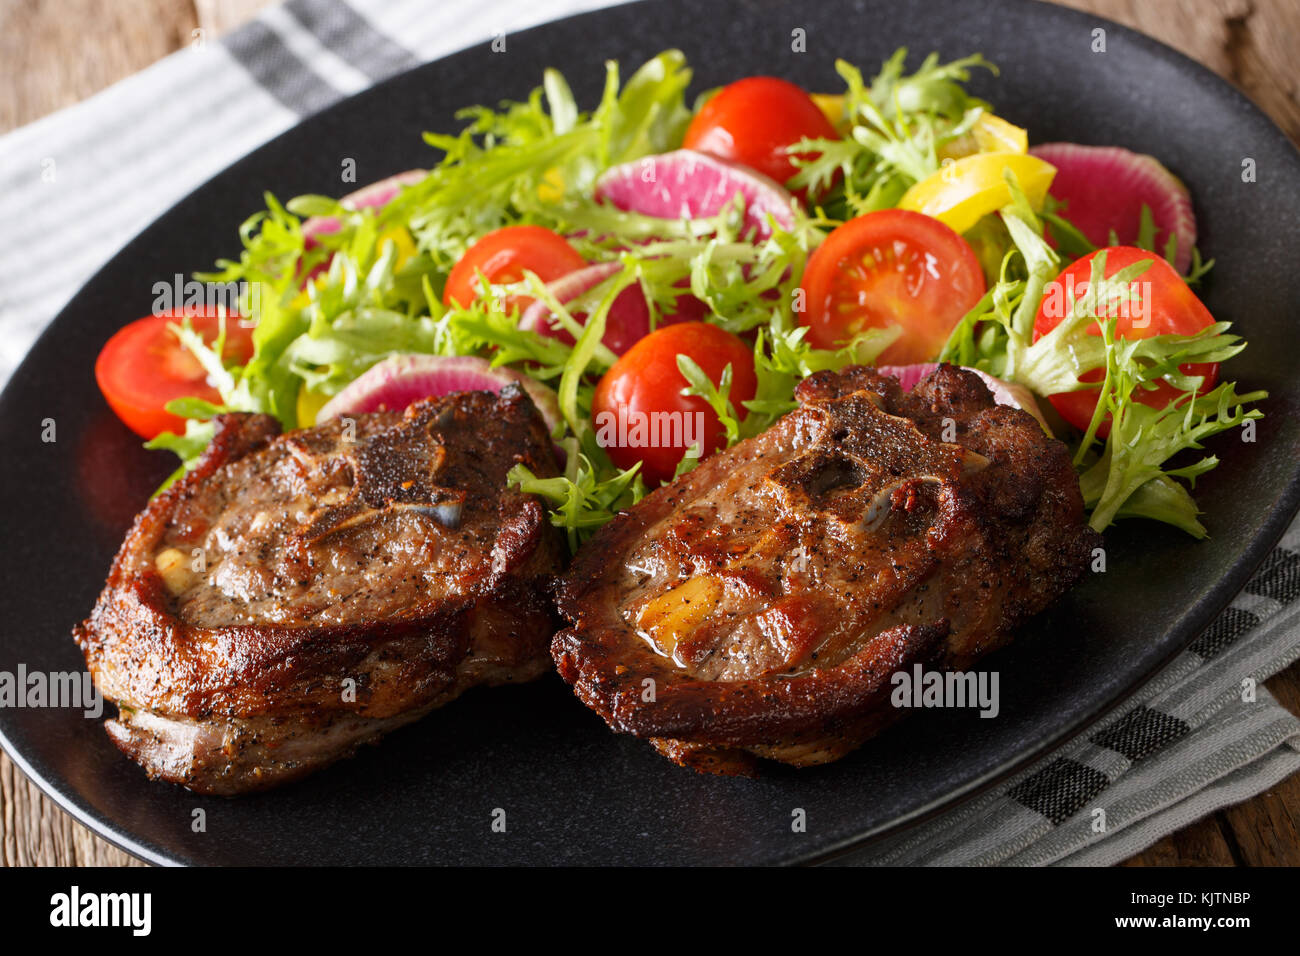 Roasted lamb steak and vegetable salad from radish, tomatoes, pepper and lettuce close-up on a plate. horizontal - Stock Image